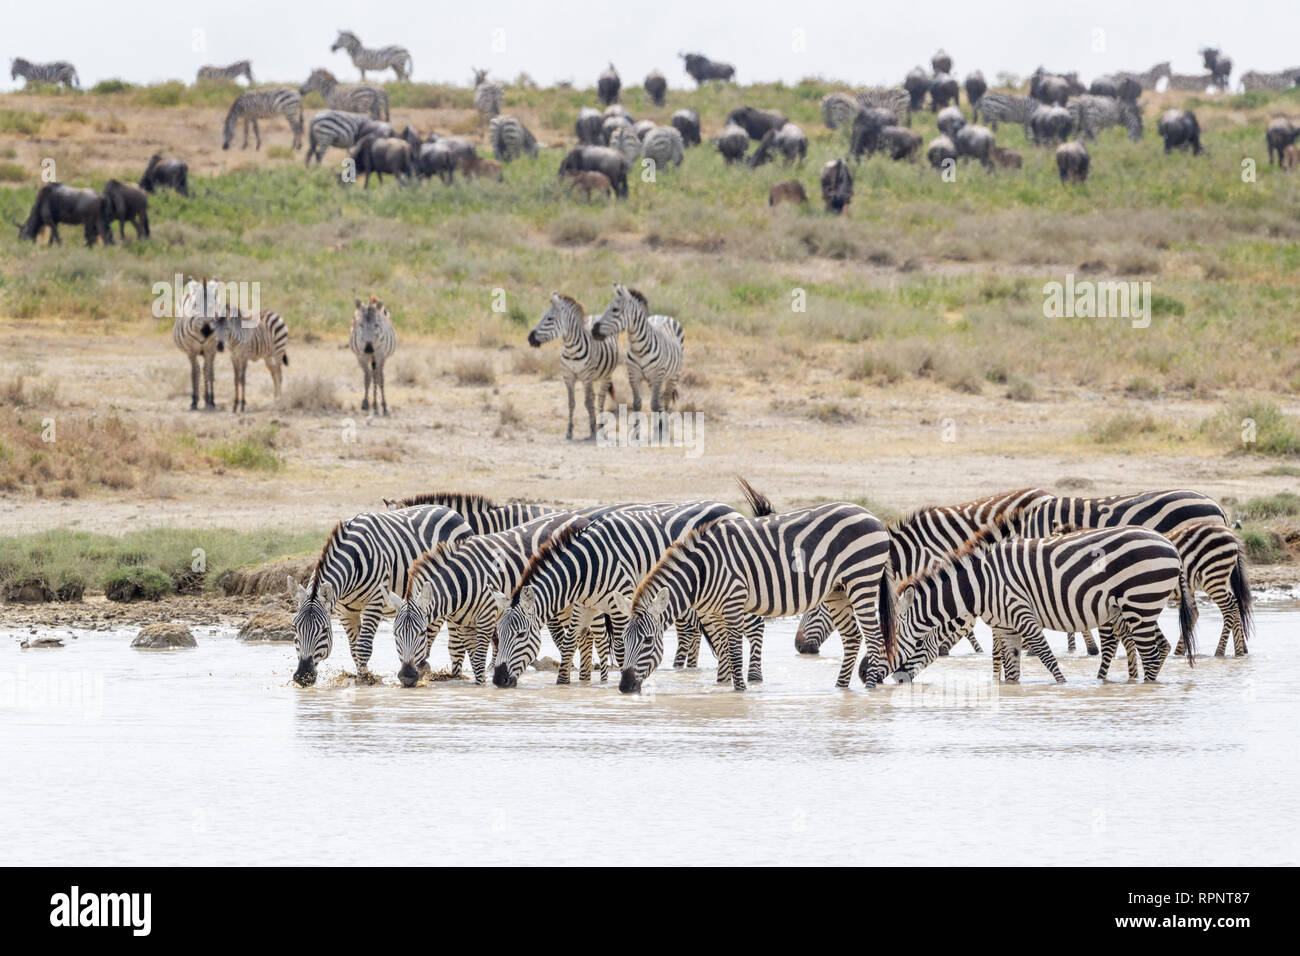 Common or Plains Zebra (Equus quagga) herd, drinking water with during the great migration, Ngorongoro crater national park, Tanzania - Stock Image